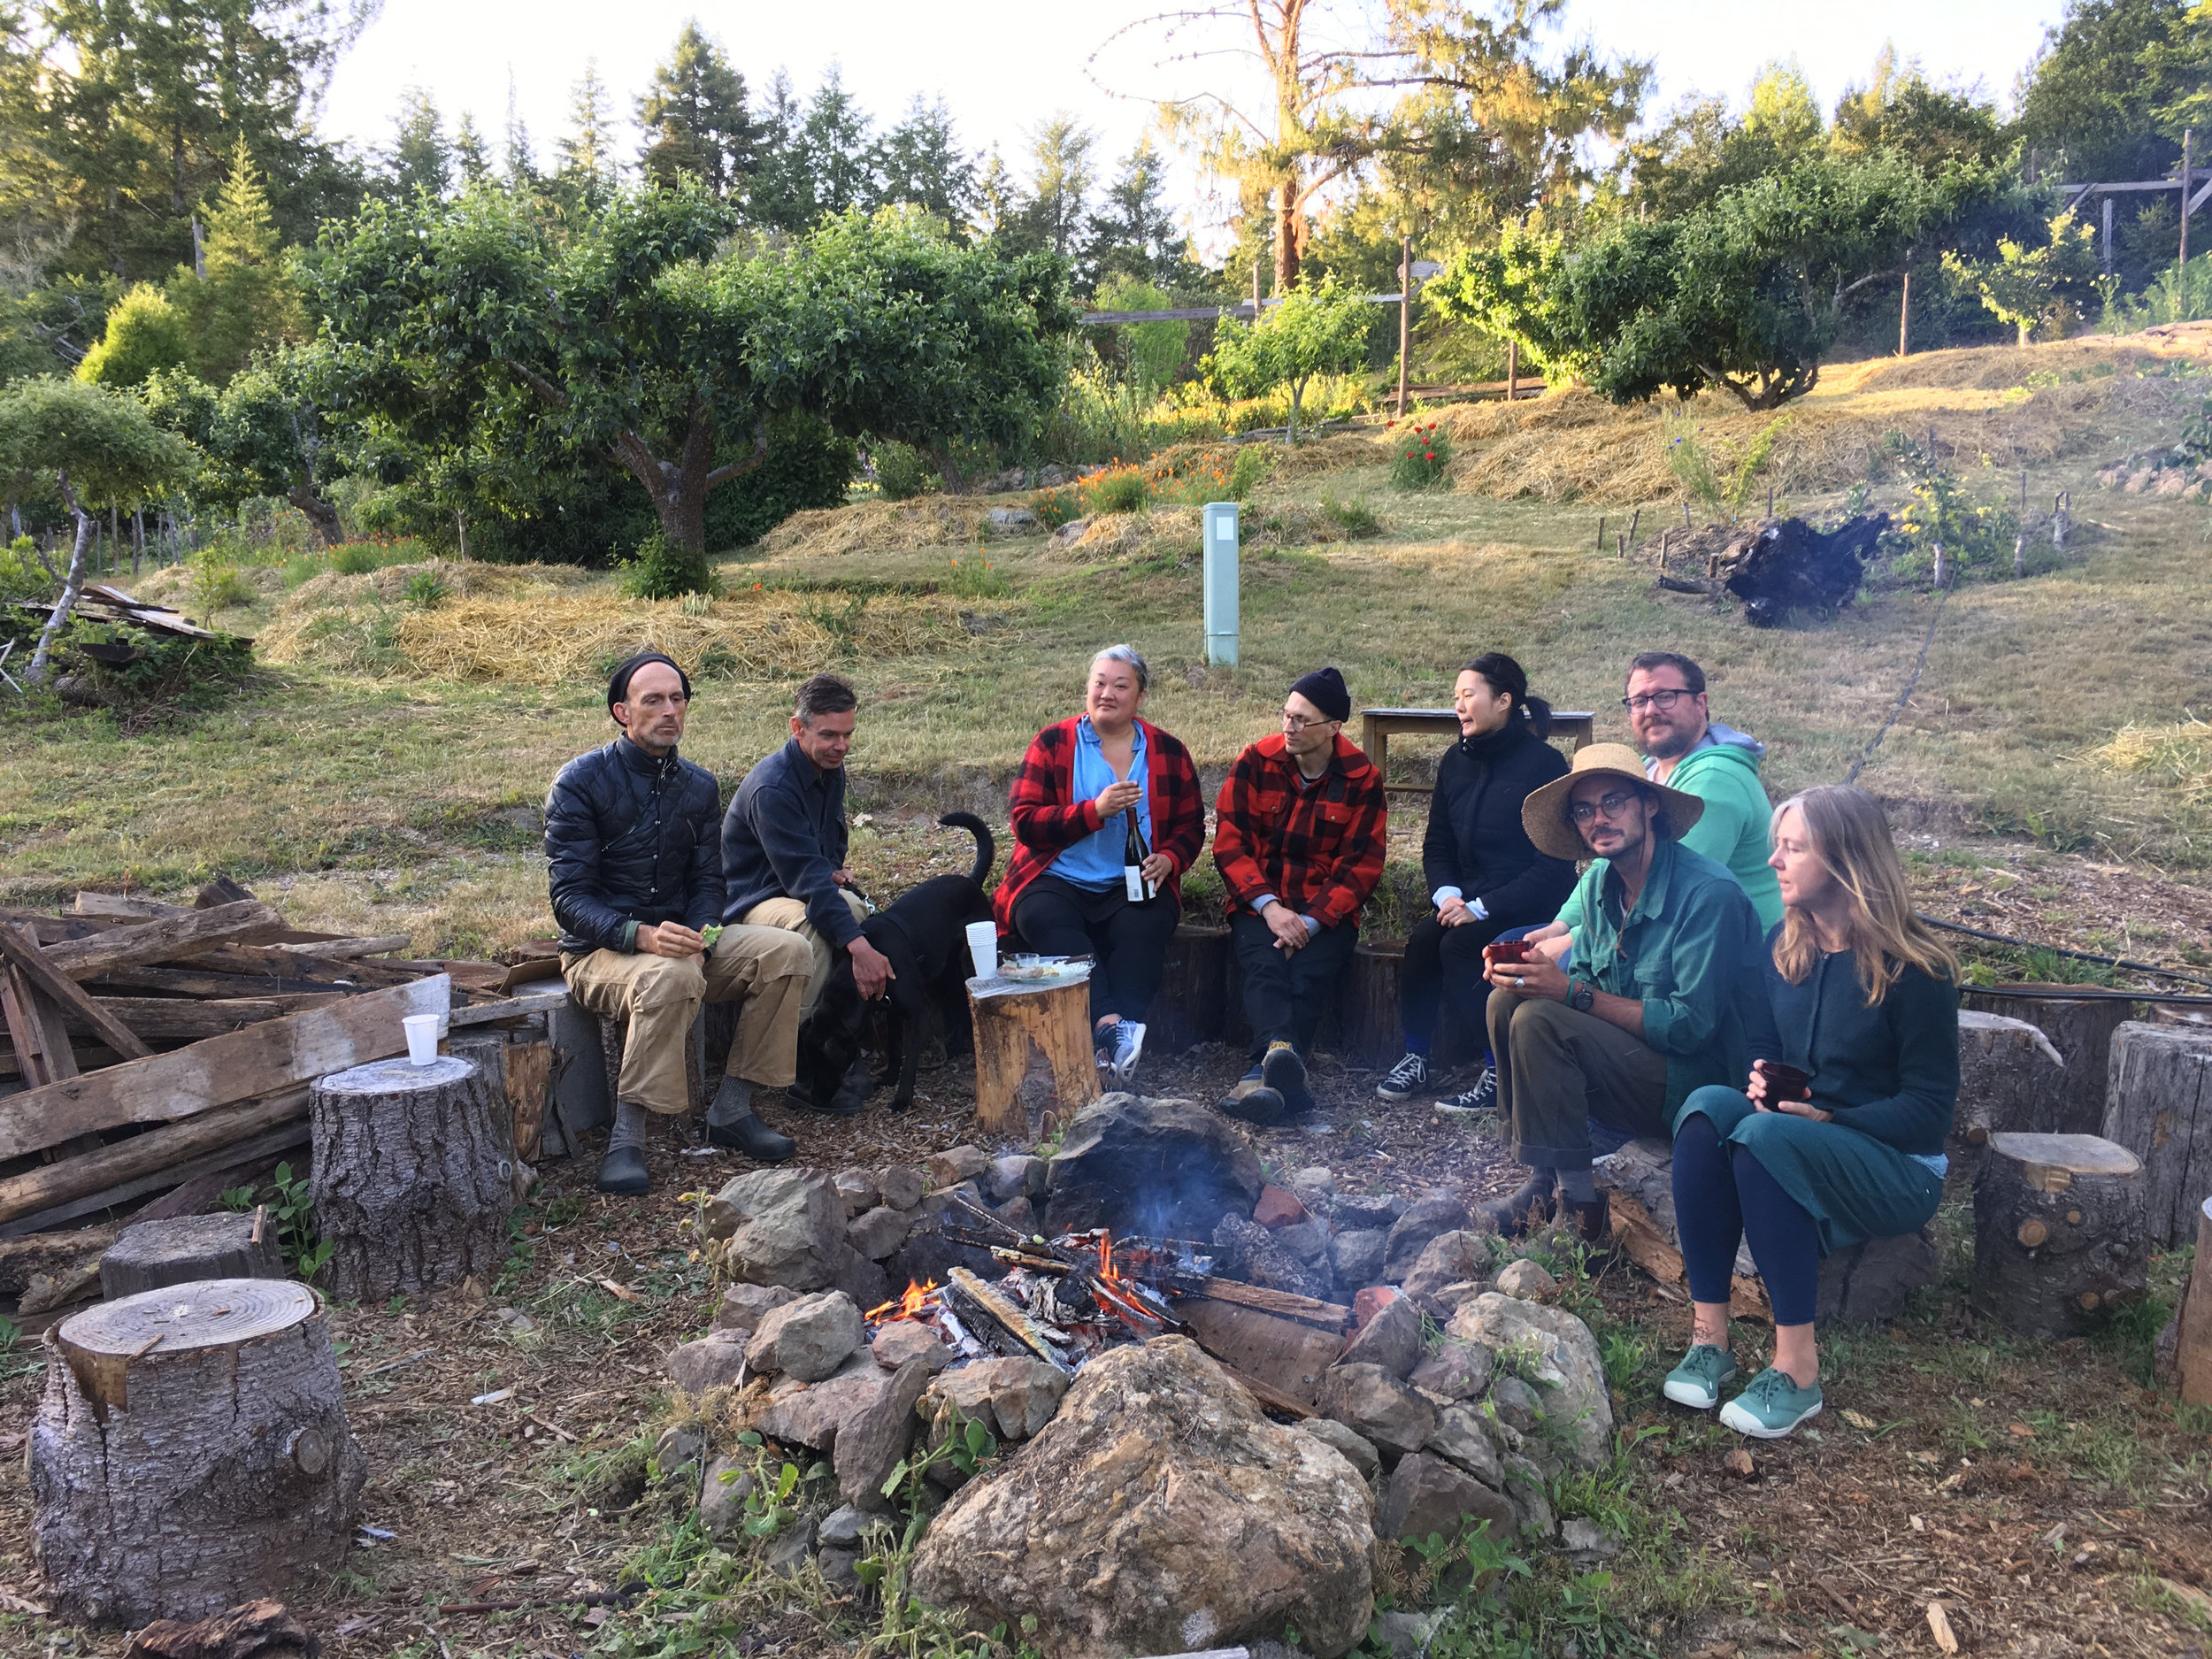 Pre-dinner drinks at Fire Ring, the Orchard, Salmon Creek Farm, June 9, 2018.